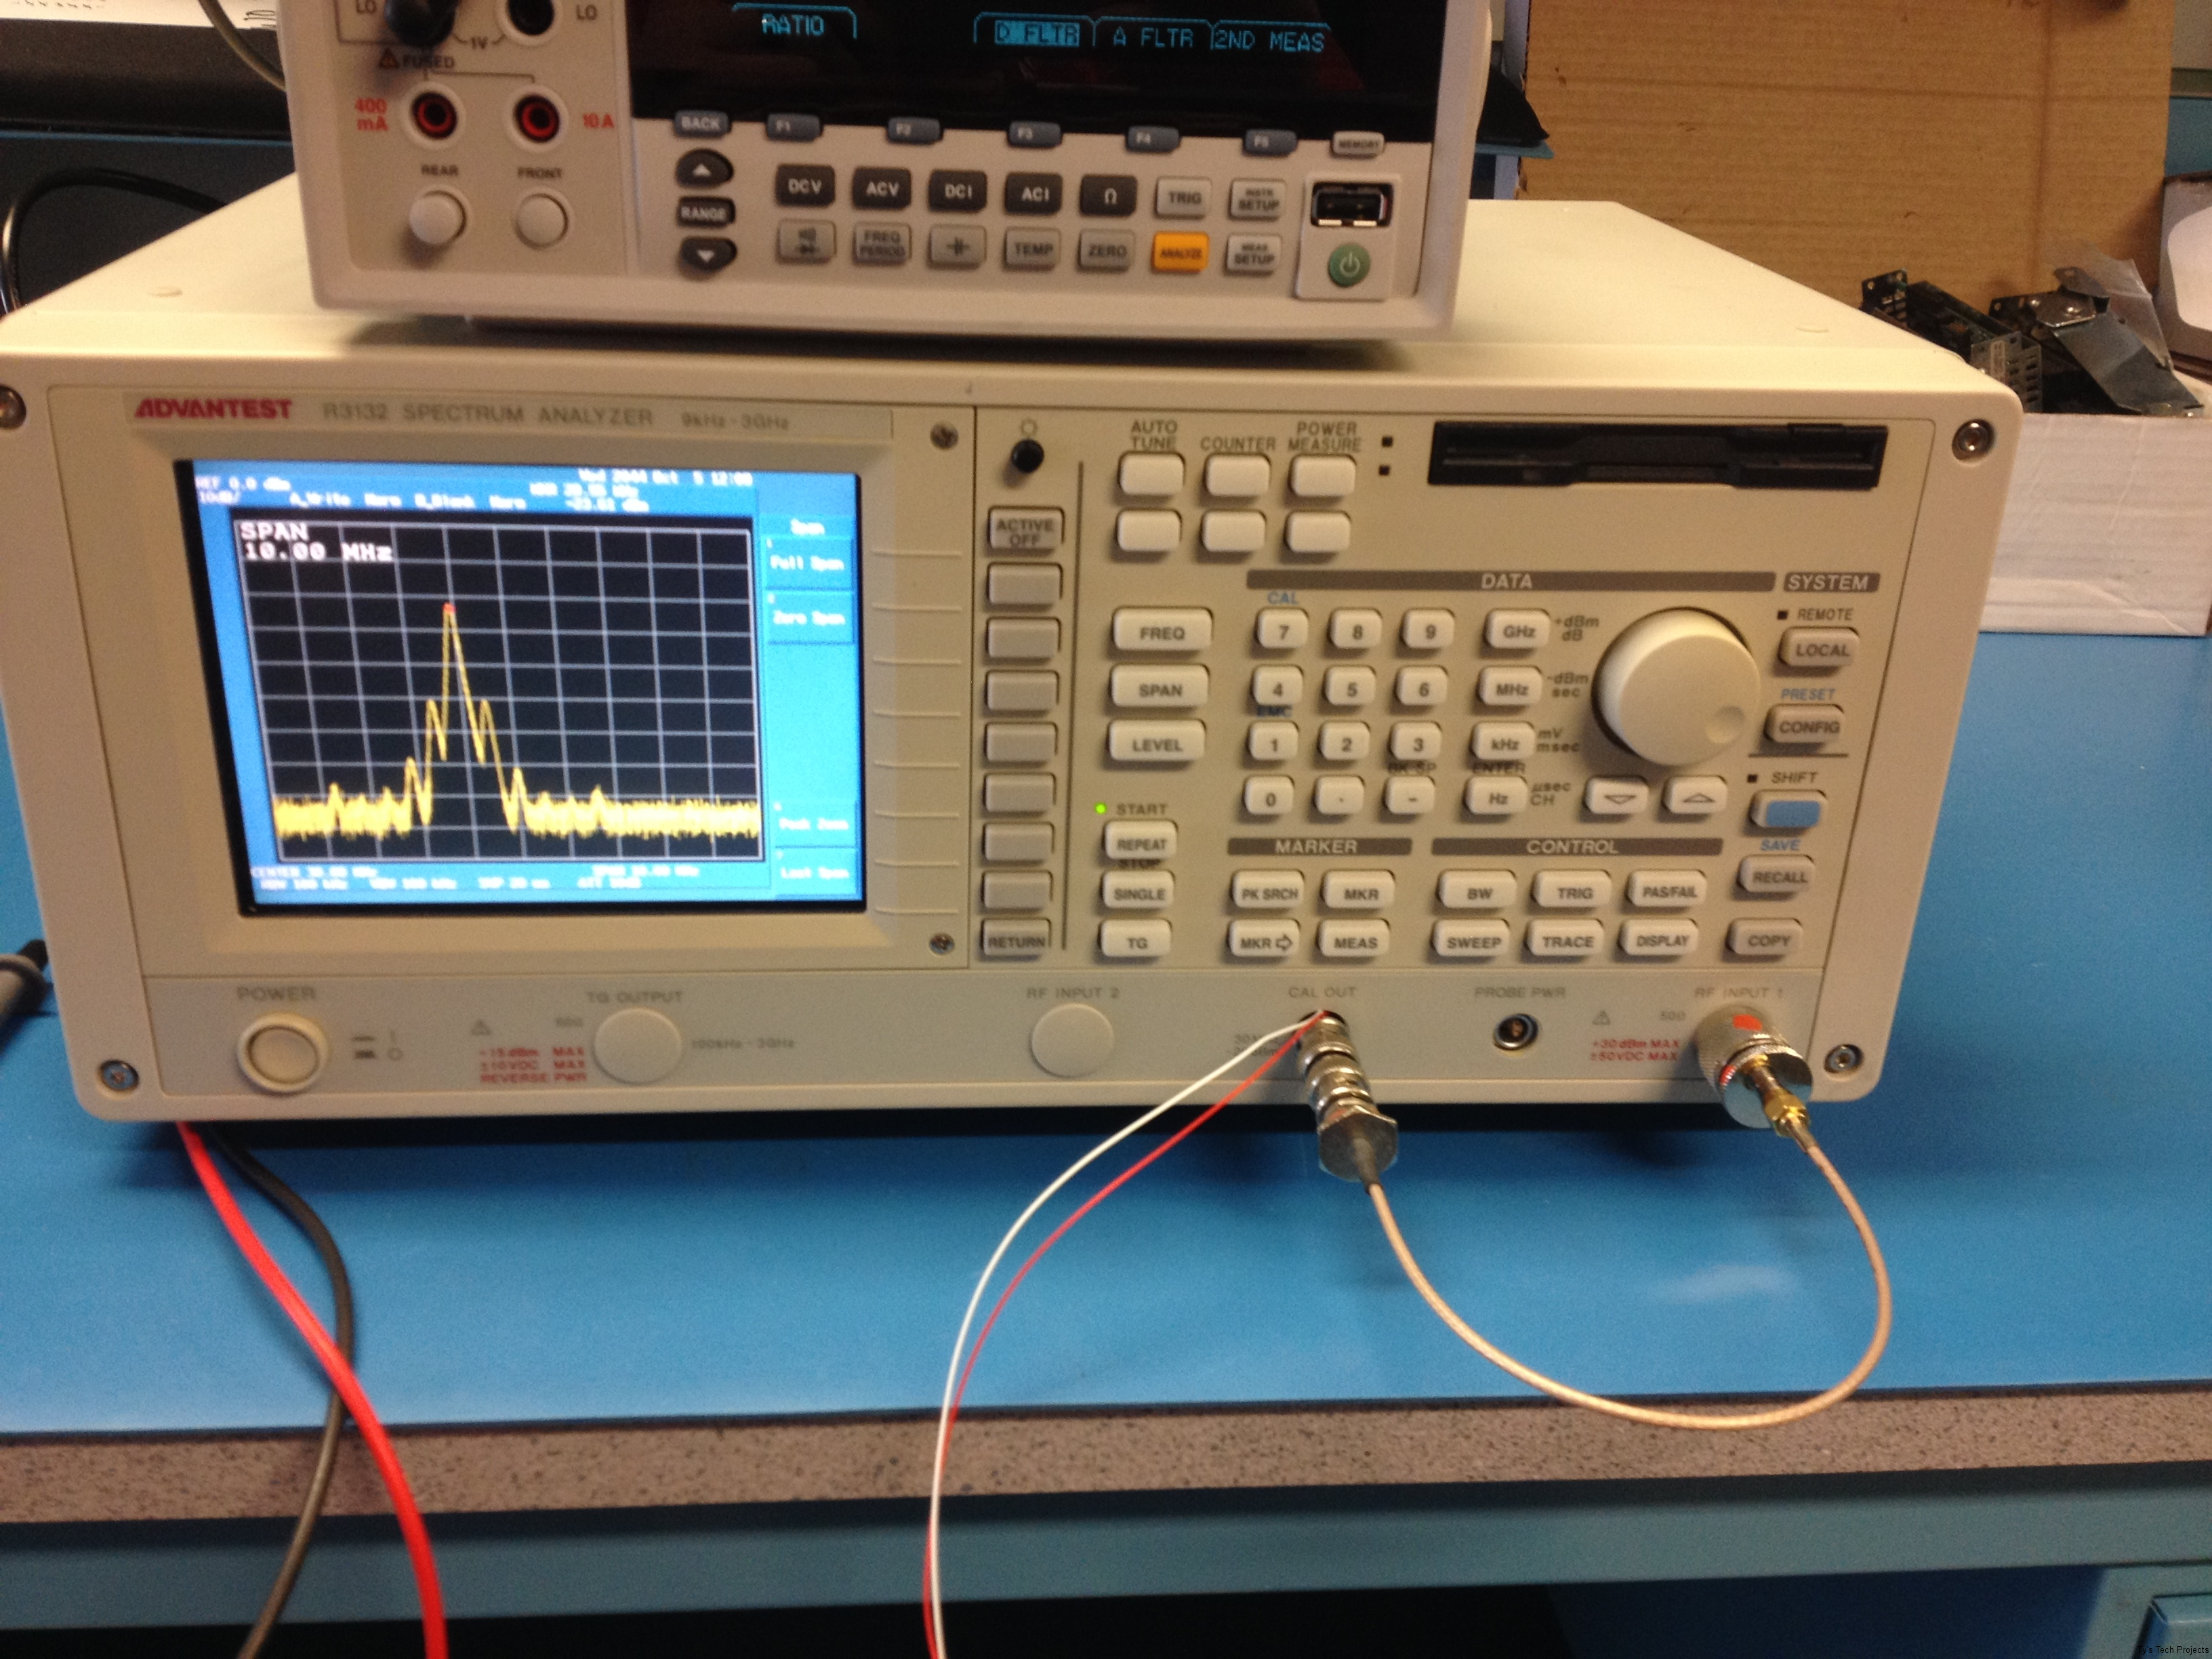 Reference measurement with wires in place looks terrible